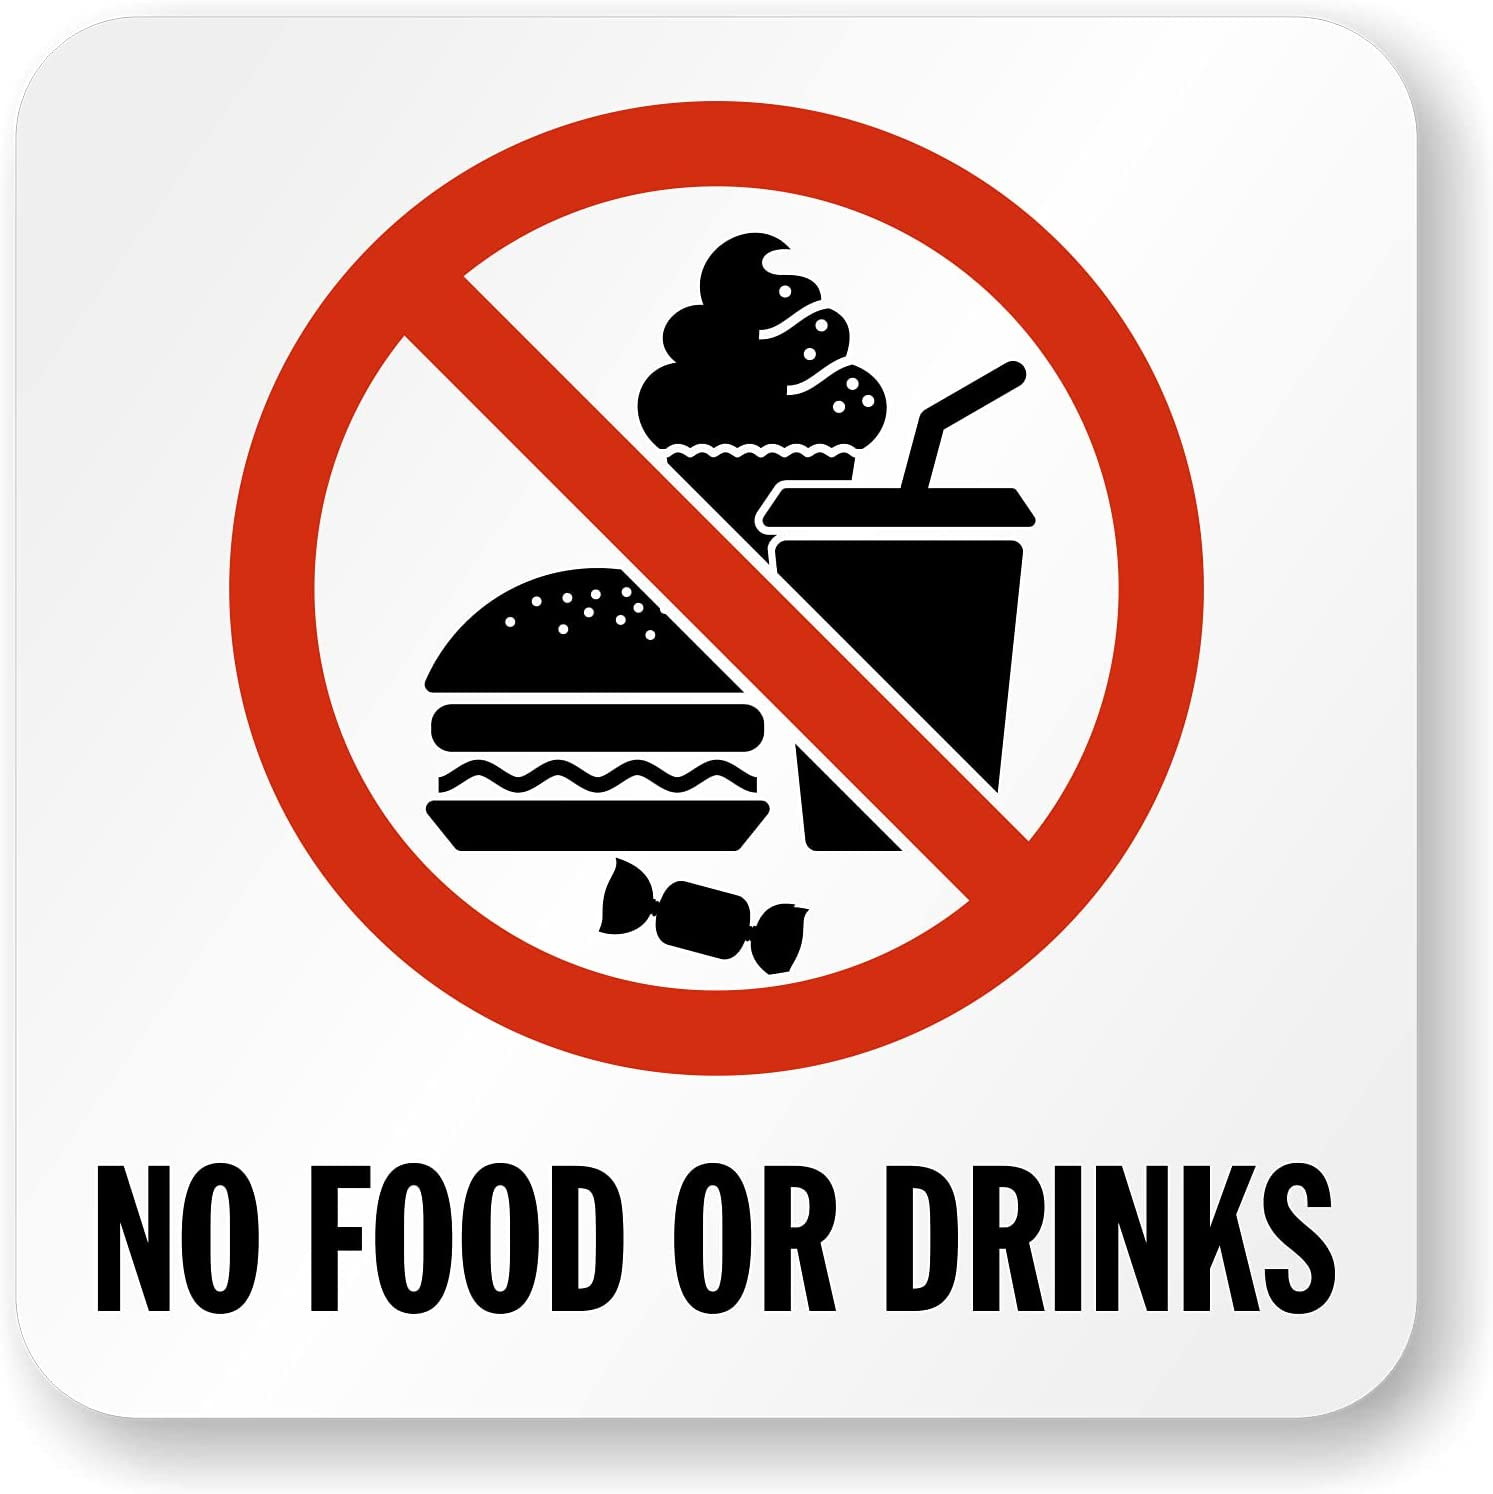 """SmartSign 5.75 x 5.75 inch """"No Food Or Drinks"""" Adhesive Pool Marker with Graphic, 20 mil Laminated Vinyl with Anti-Skid Pebbled Surface, Red, Black and White"""